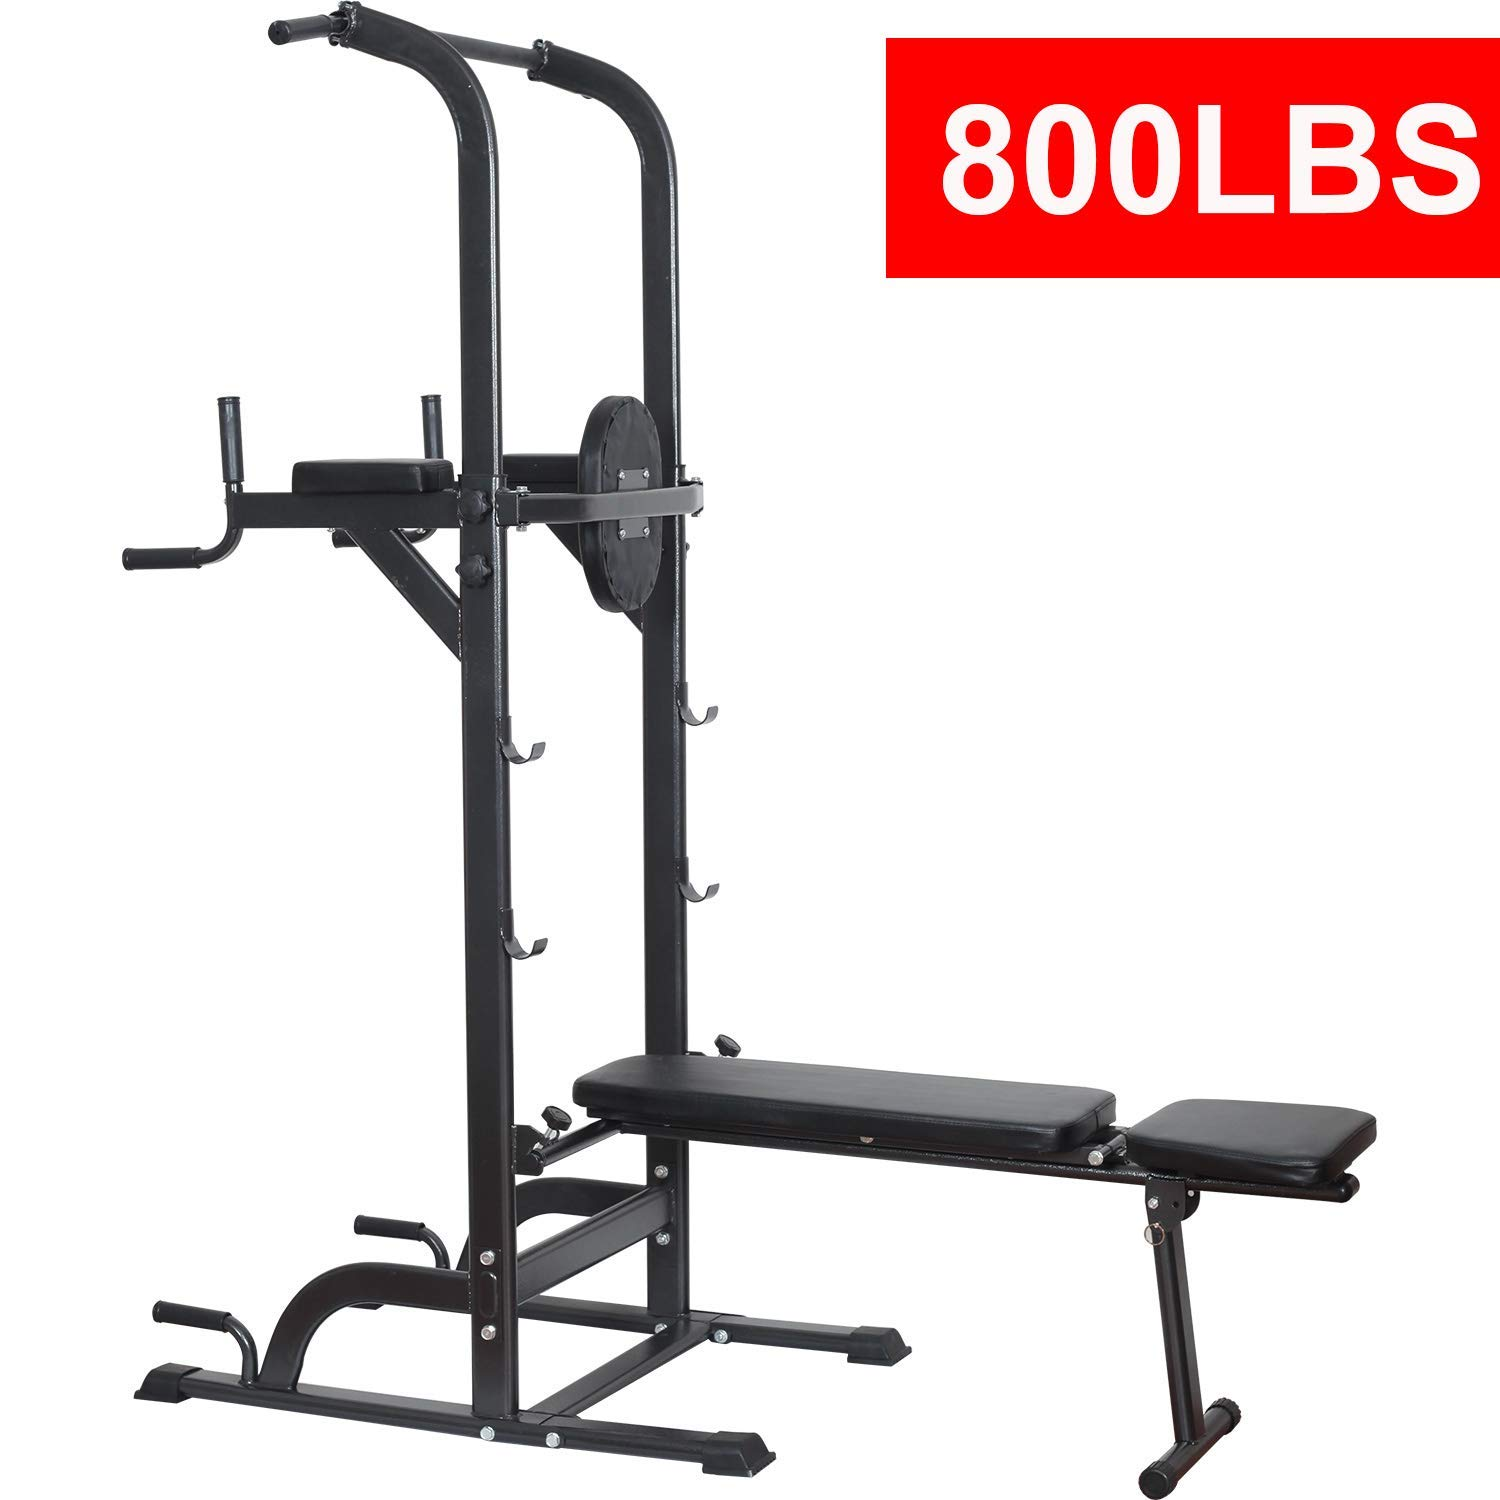 reliancer power tower dip station high capacity 800lbs w weight sitreliancer power tower dip station high capacity 800lbs w weight sit up bench adjustable height heavy duty steel multi function fitness pull up chin up tower